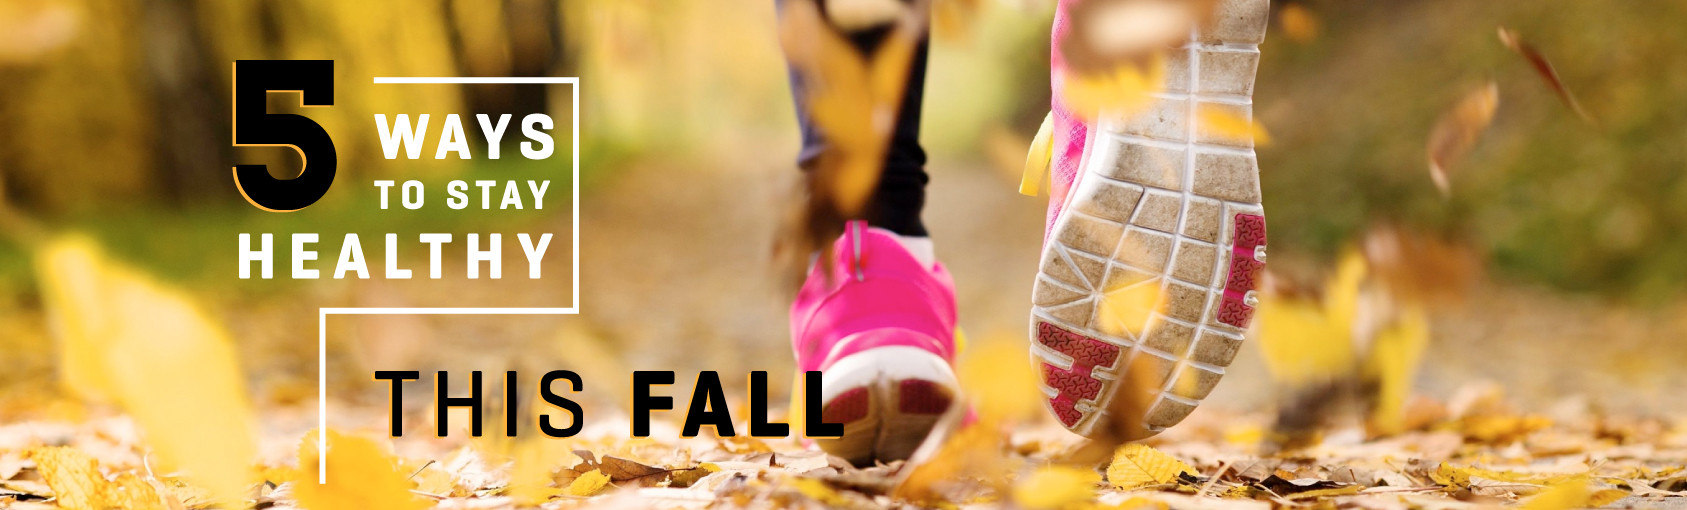 5 Ways to Stay Healthy This Fall banner